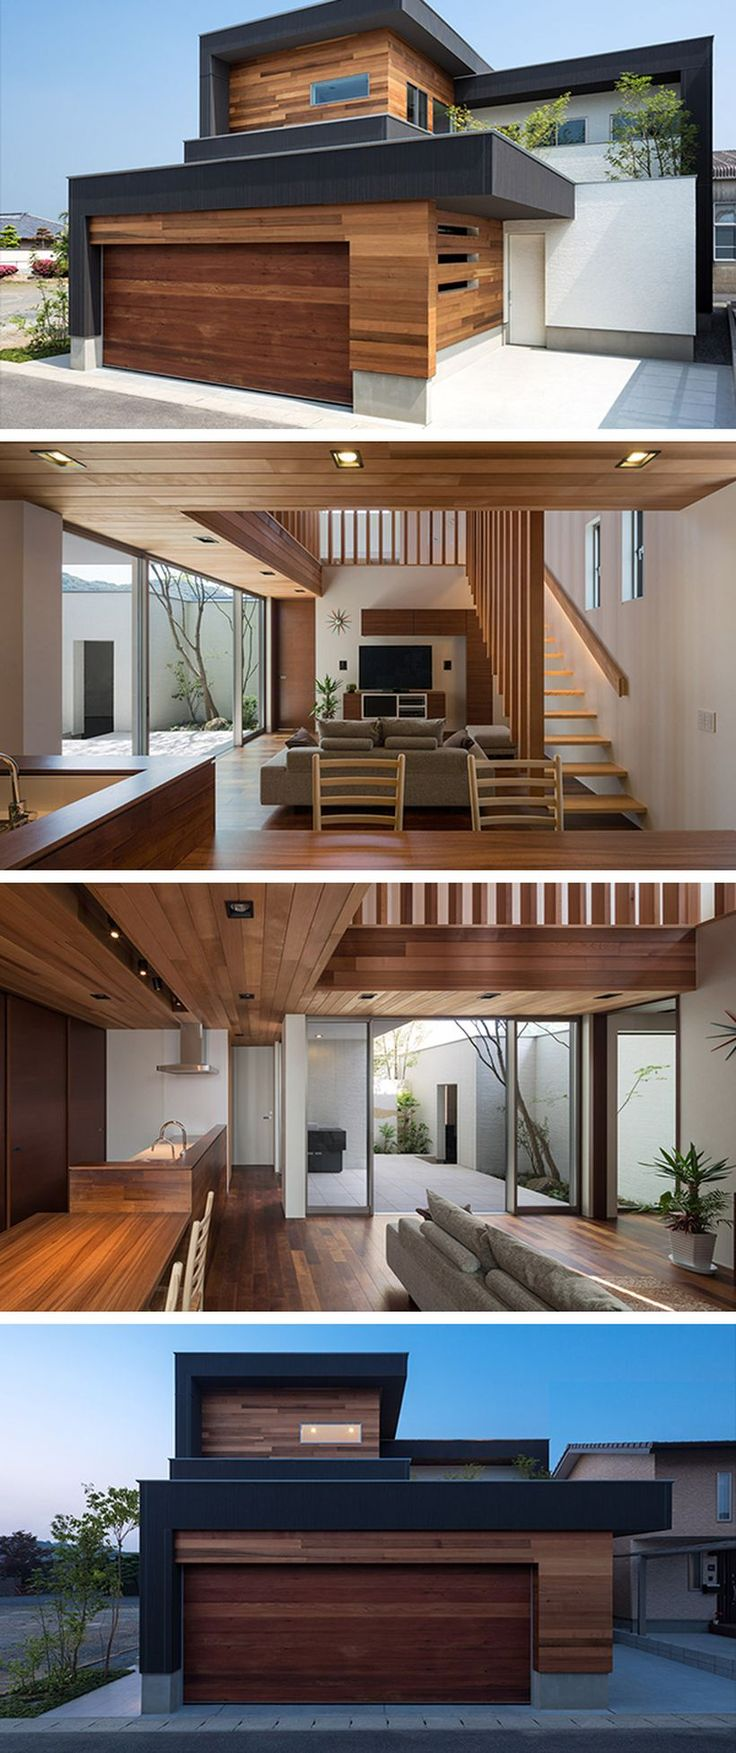 1296 best design images on Pinterest | Arquitetura, Home ideas and ...